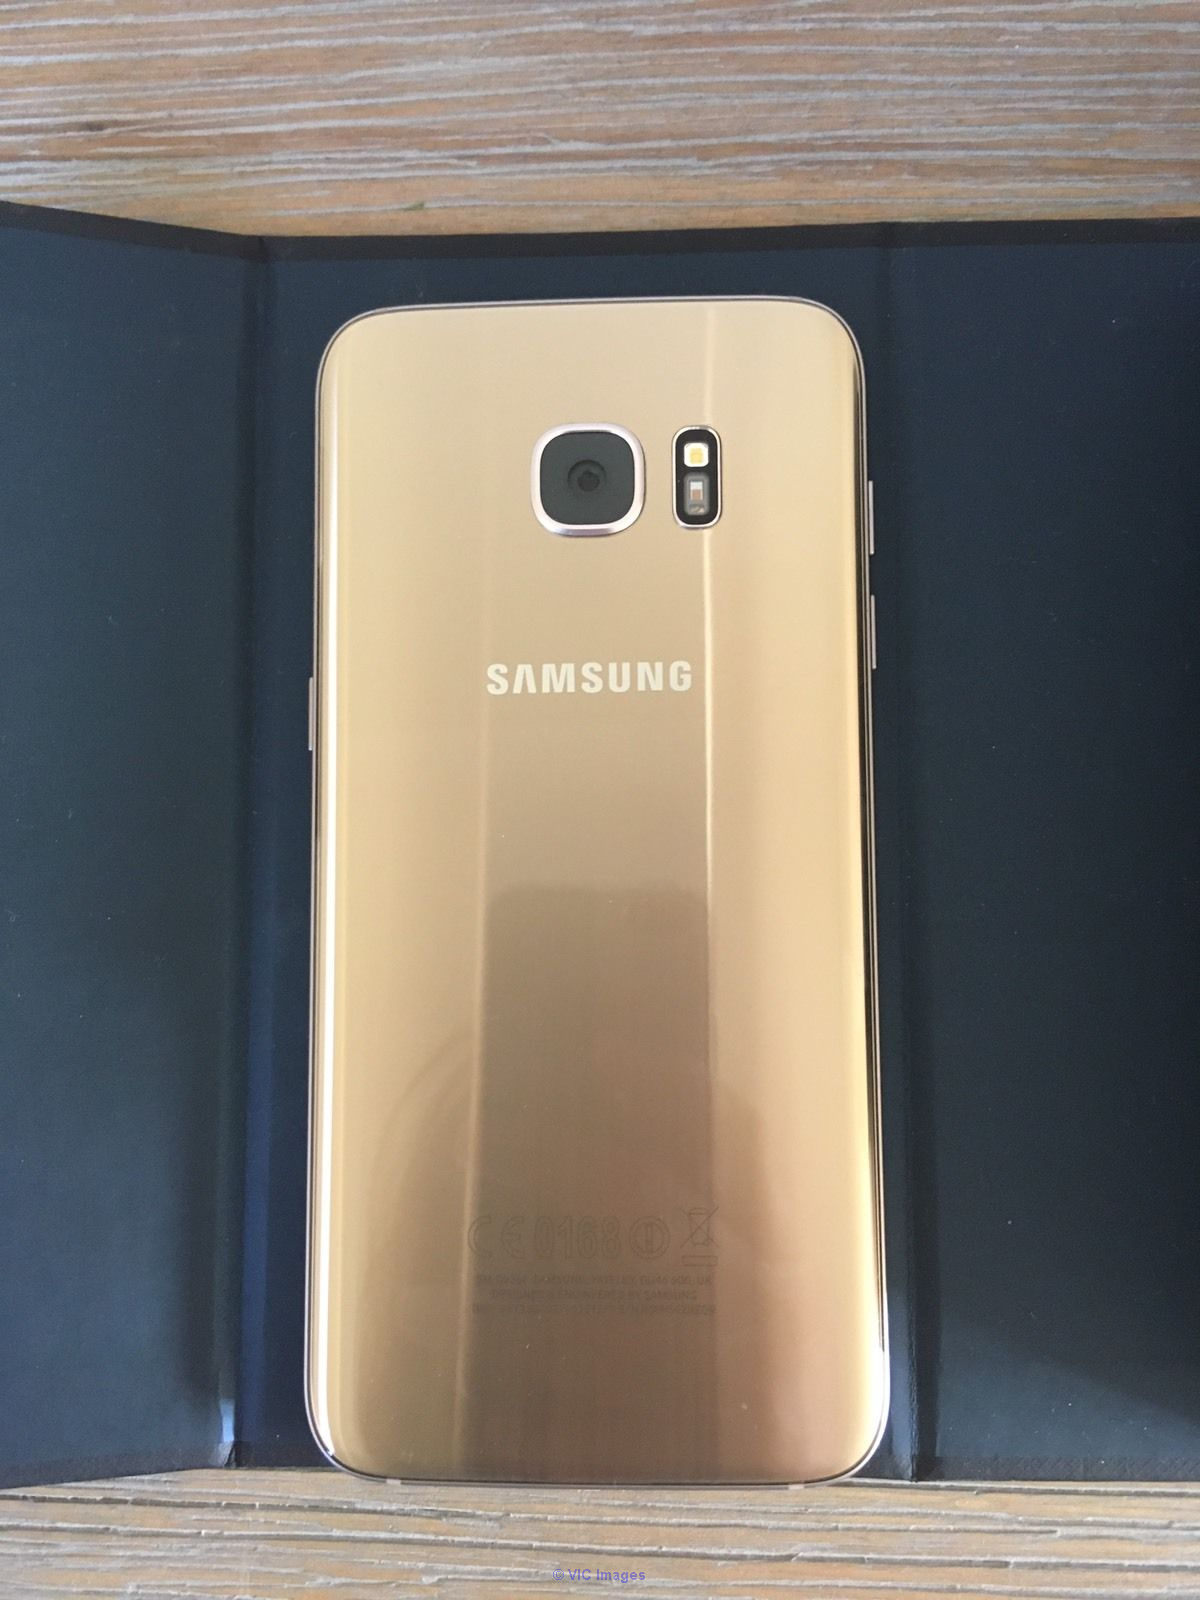 SAMSUNG GALAXY S7 EDGE GOLD SMARTPHONE FOR VERY CHEAP PRICE! ottawa